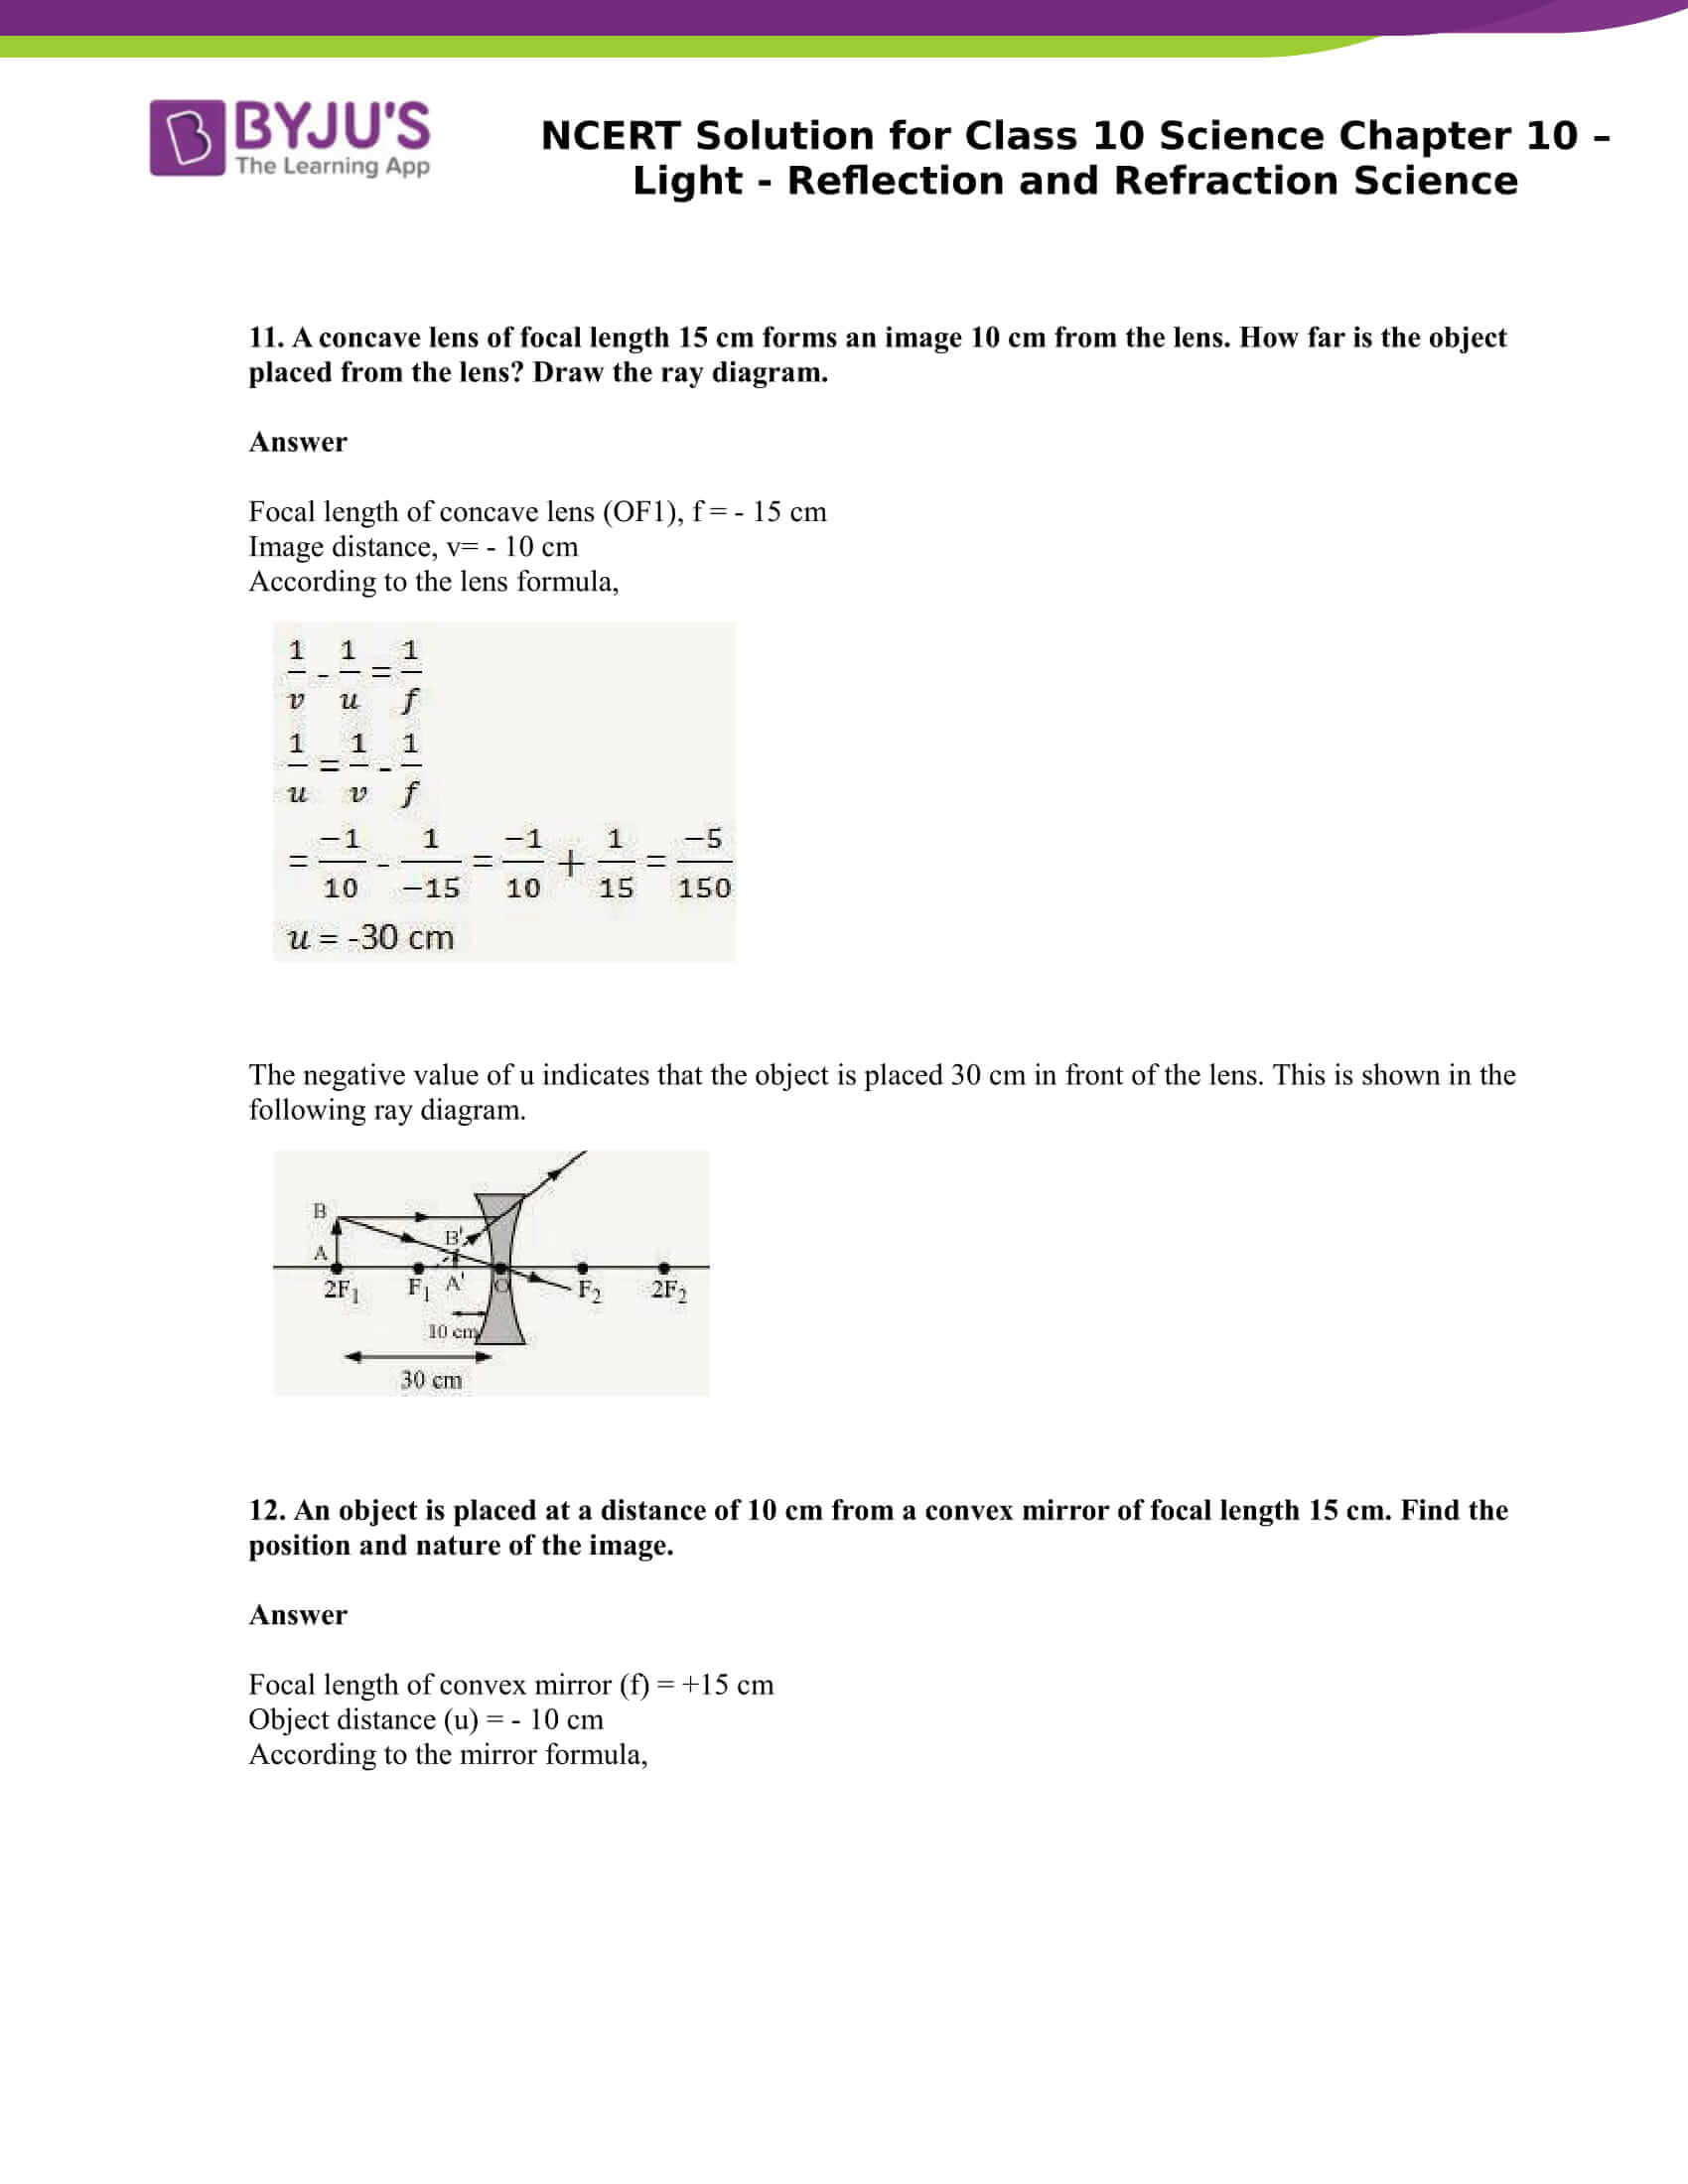 NCERT Solution for CBSE Class 10 Science Chapter 10 Light Reflection and Refraction Science Part 9